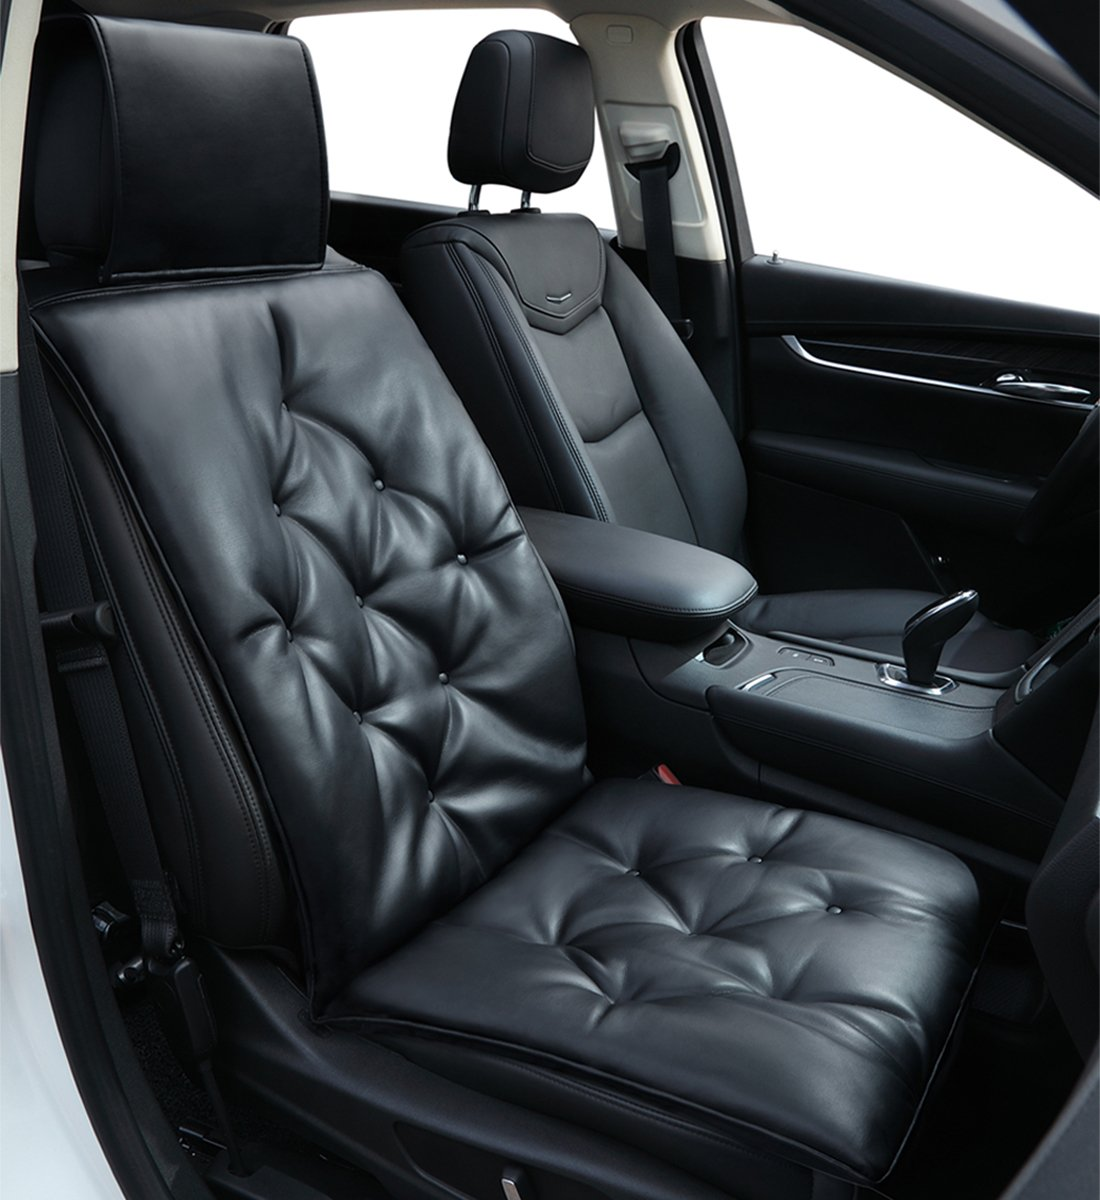 Big Ant Car Seat Cushion Breathable Car Interior Seat Cover Cushion Pad Mat for Auto Supplies Office Chair with PU Leather Black-2PCS